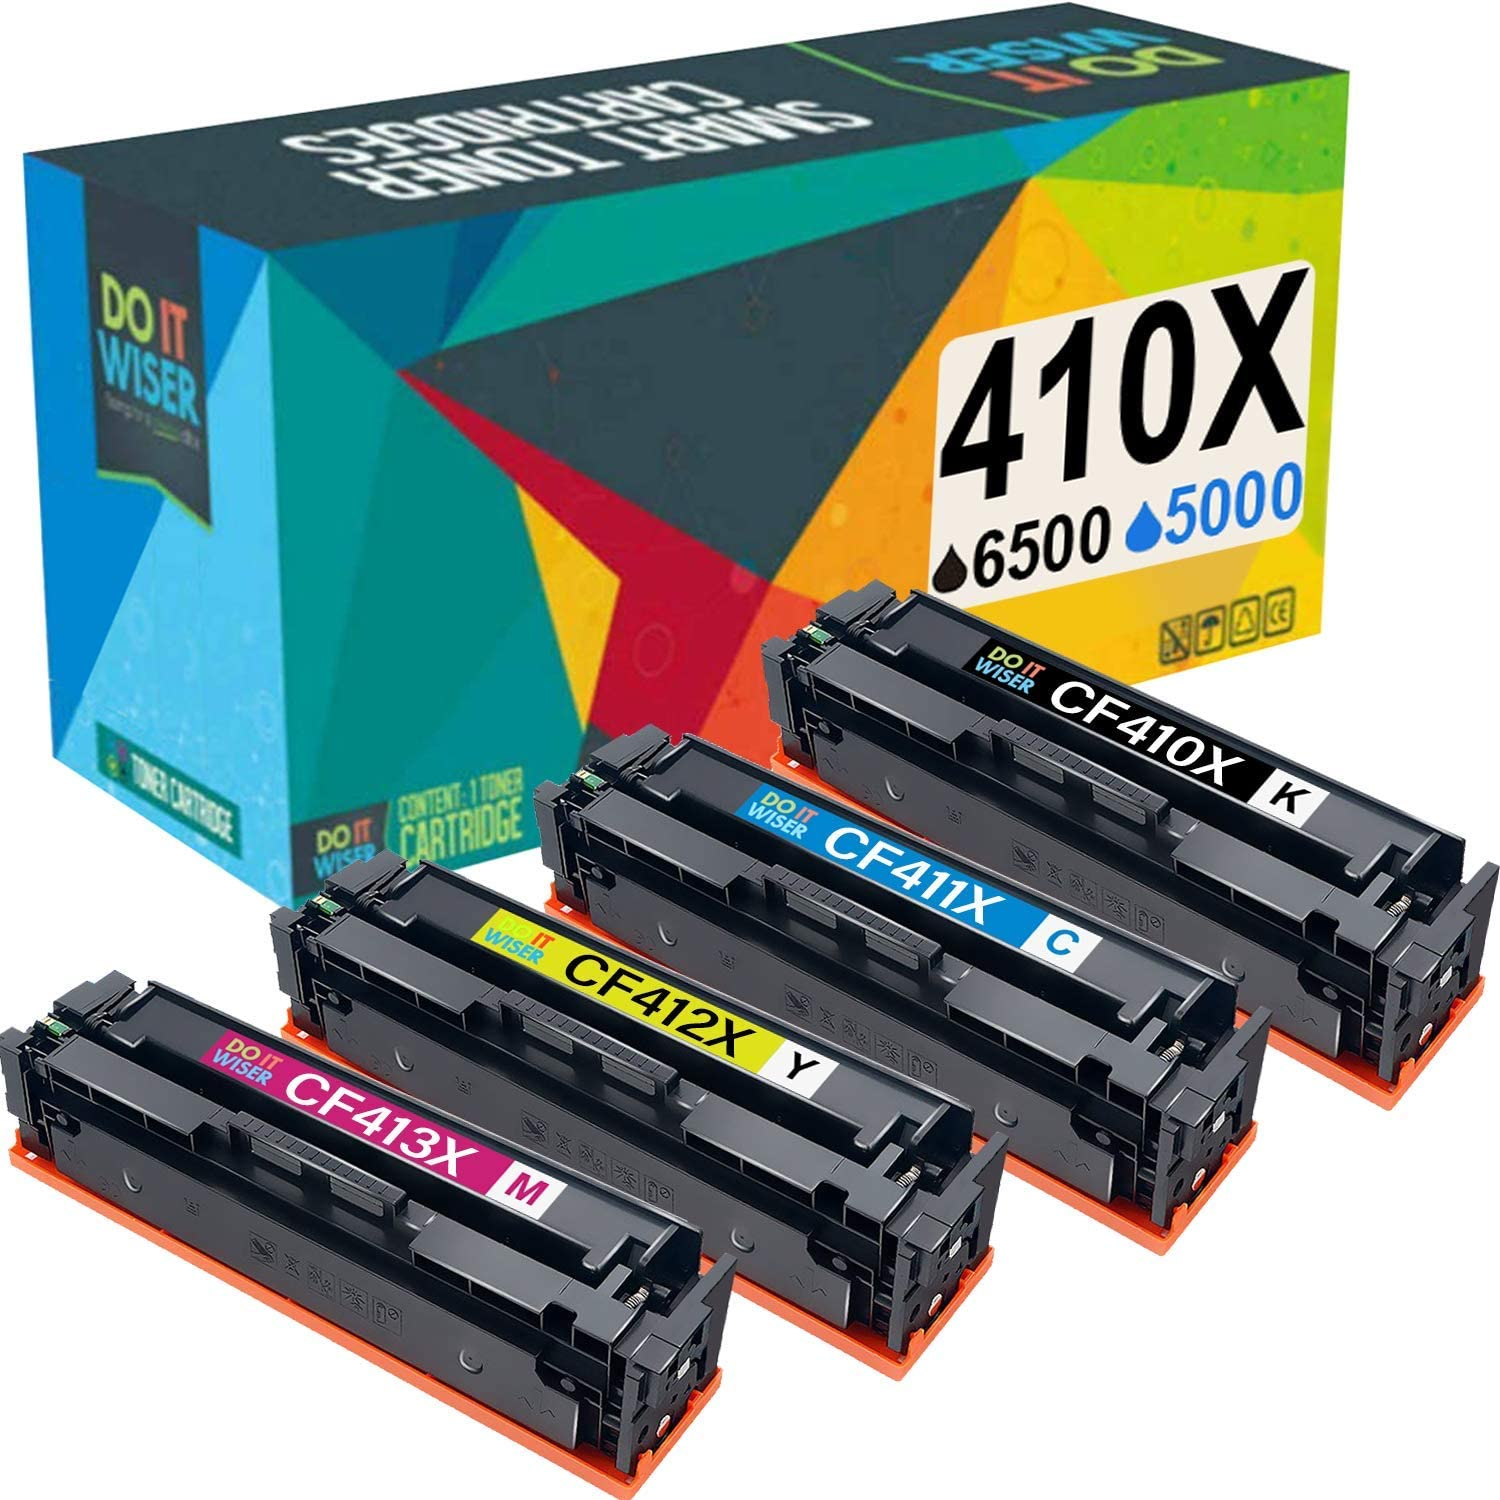 Do It Wiser Compatible Toner Cartridge Replacement for HP 410A 410X CF410X CF410A Color Laserjet Pro MFP M477fdw M477fdn M477fnw M452dn M452dw M452nw M377 (4-Pack)